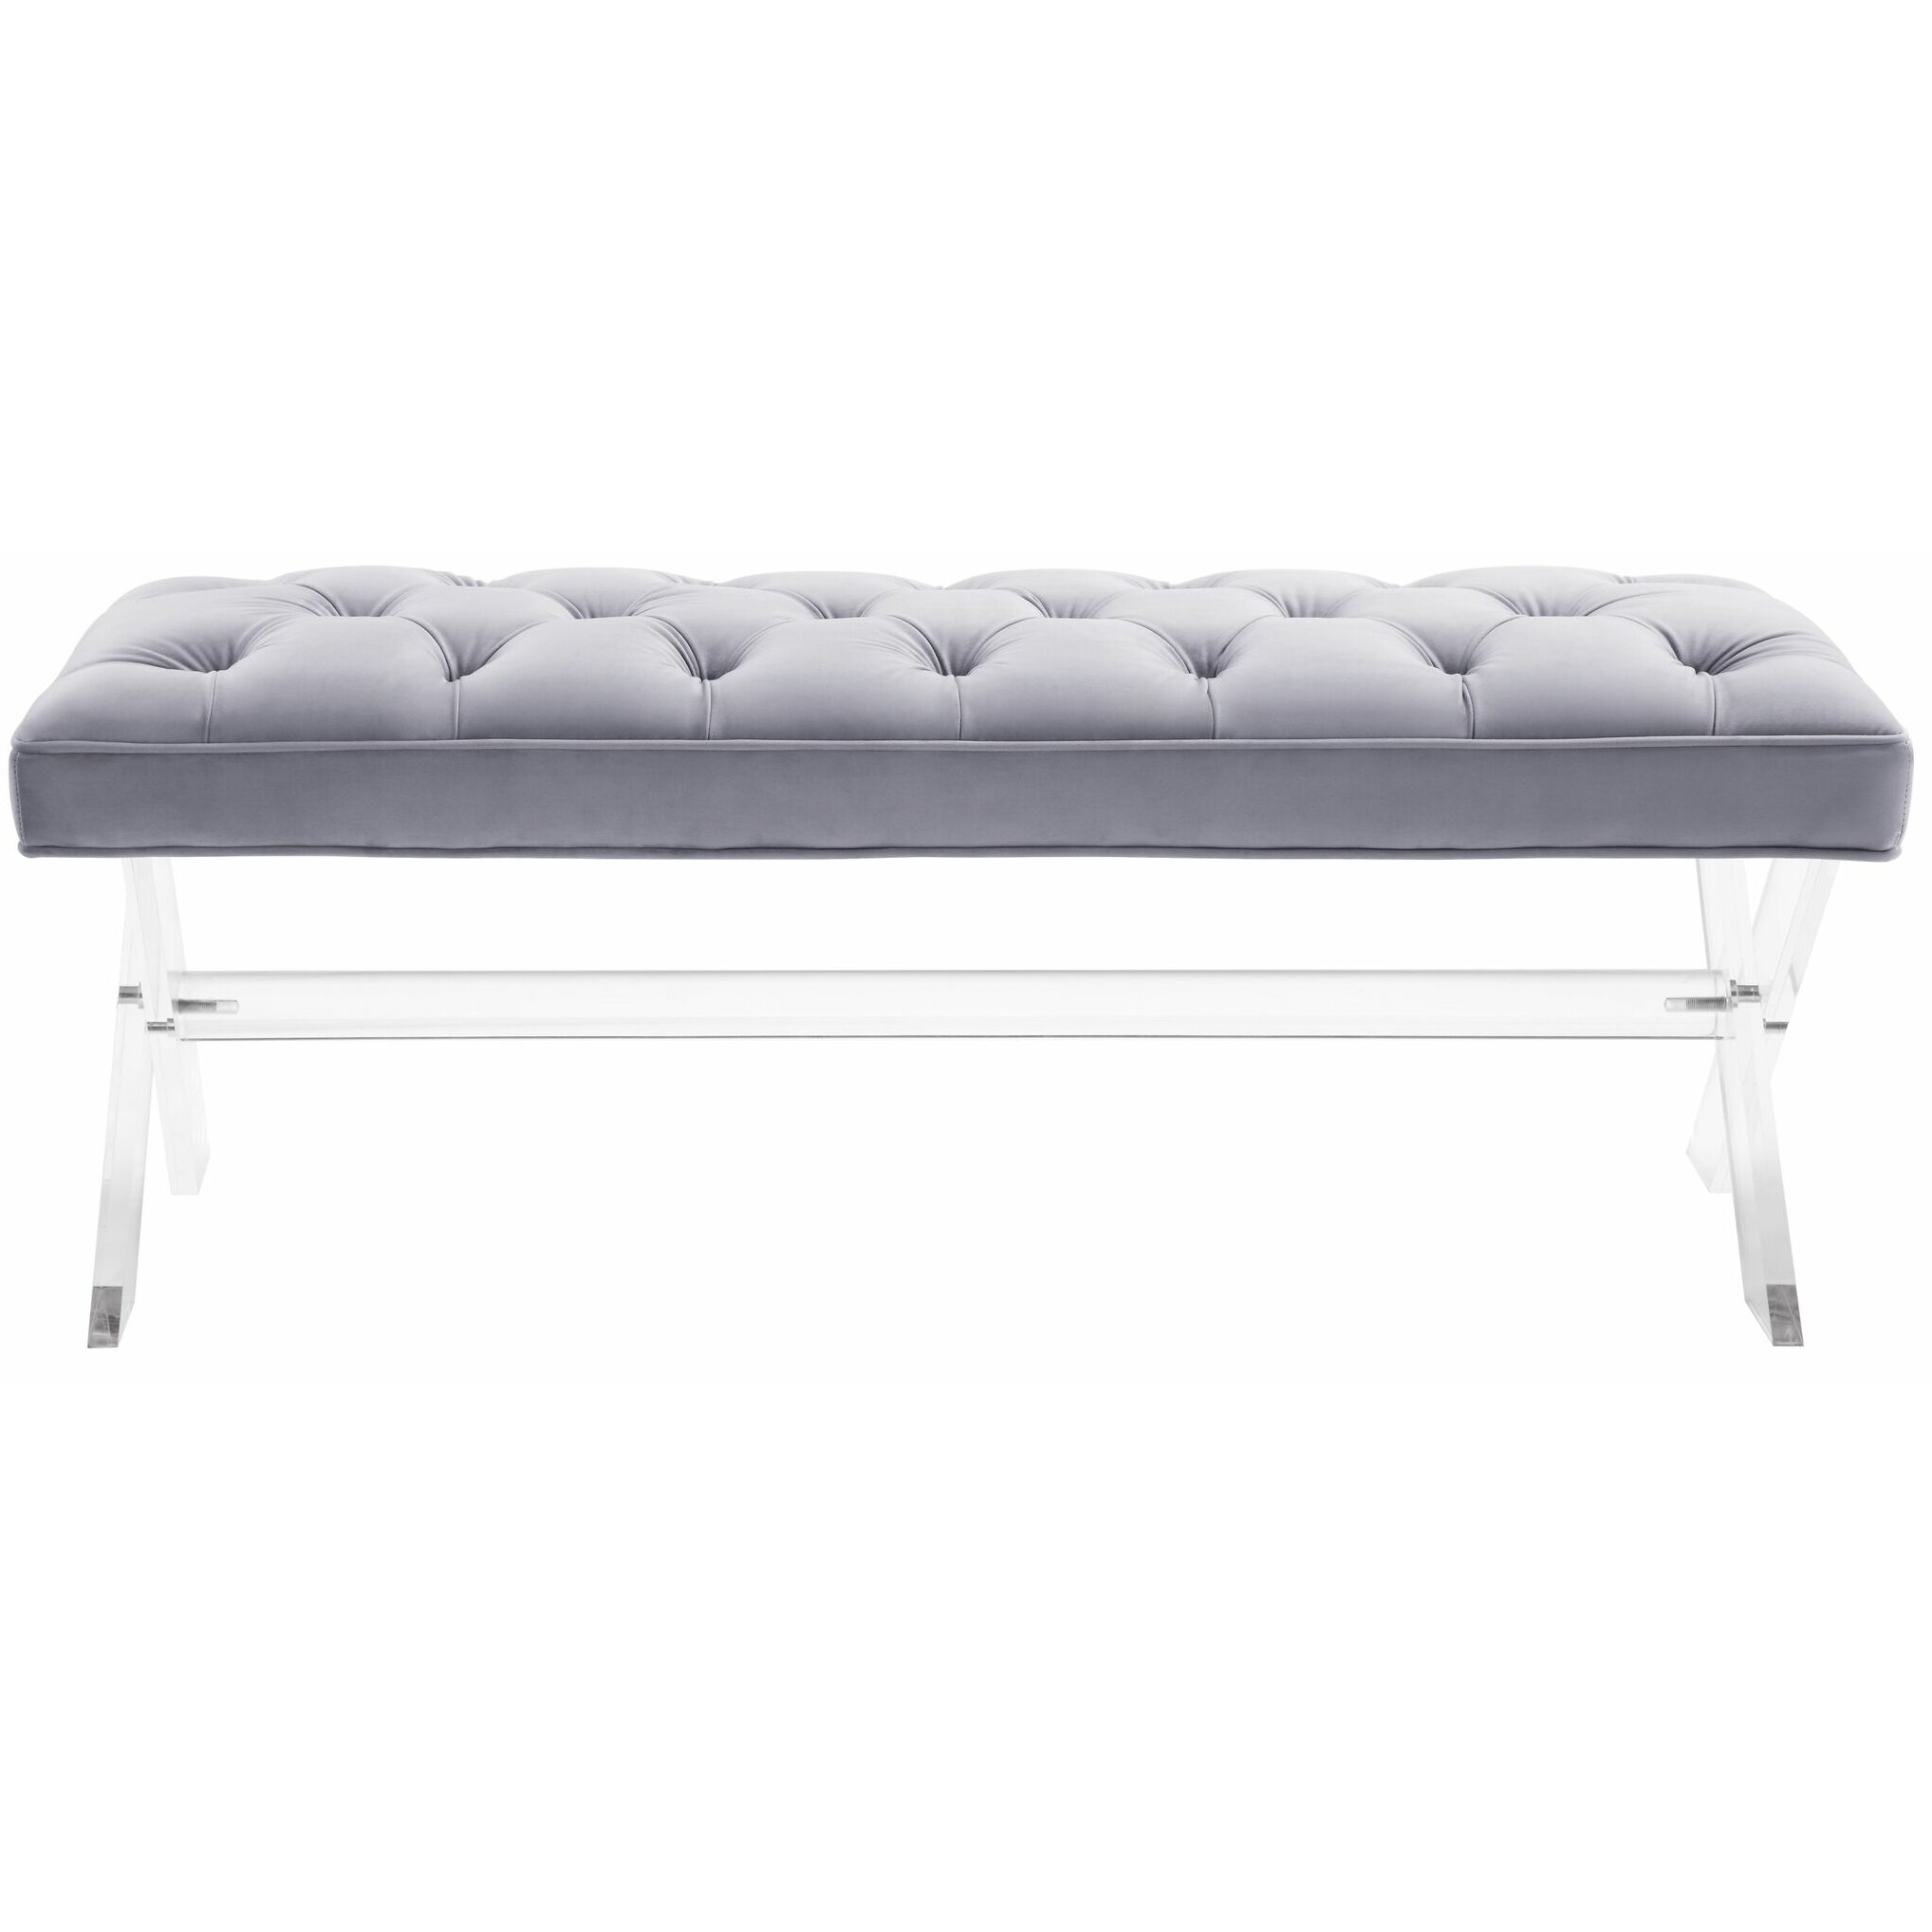 Bedroom bench dimensions - House Of Hampton Reg Southborough Upholstered Bedroom Bench